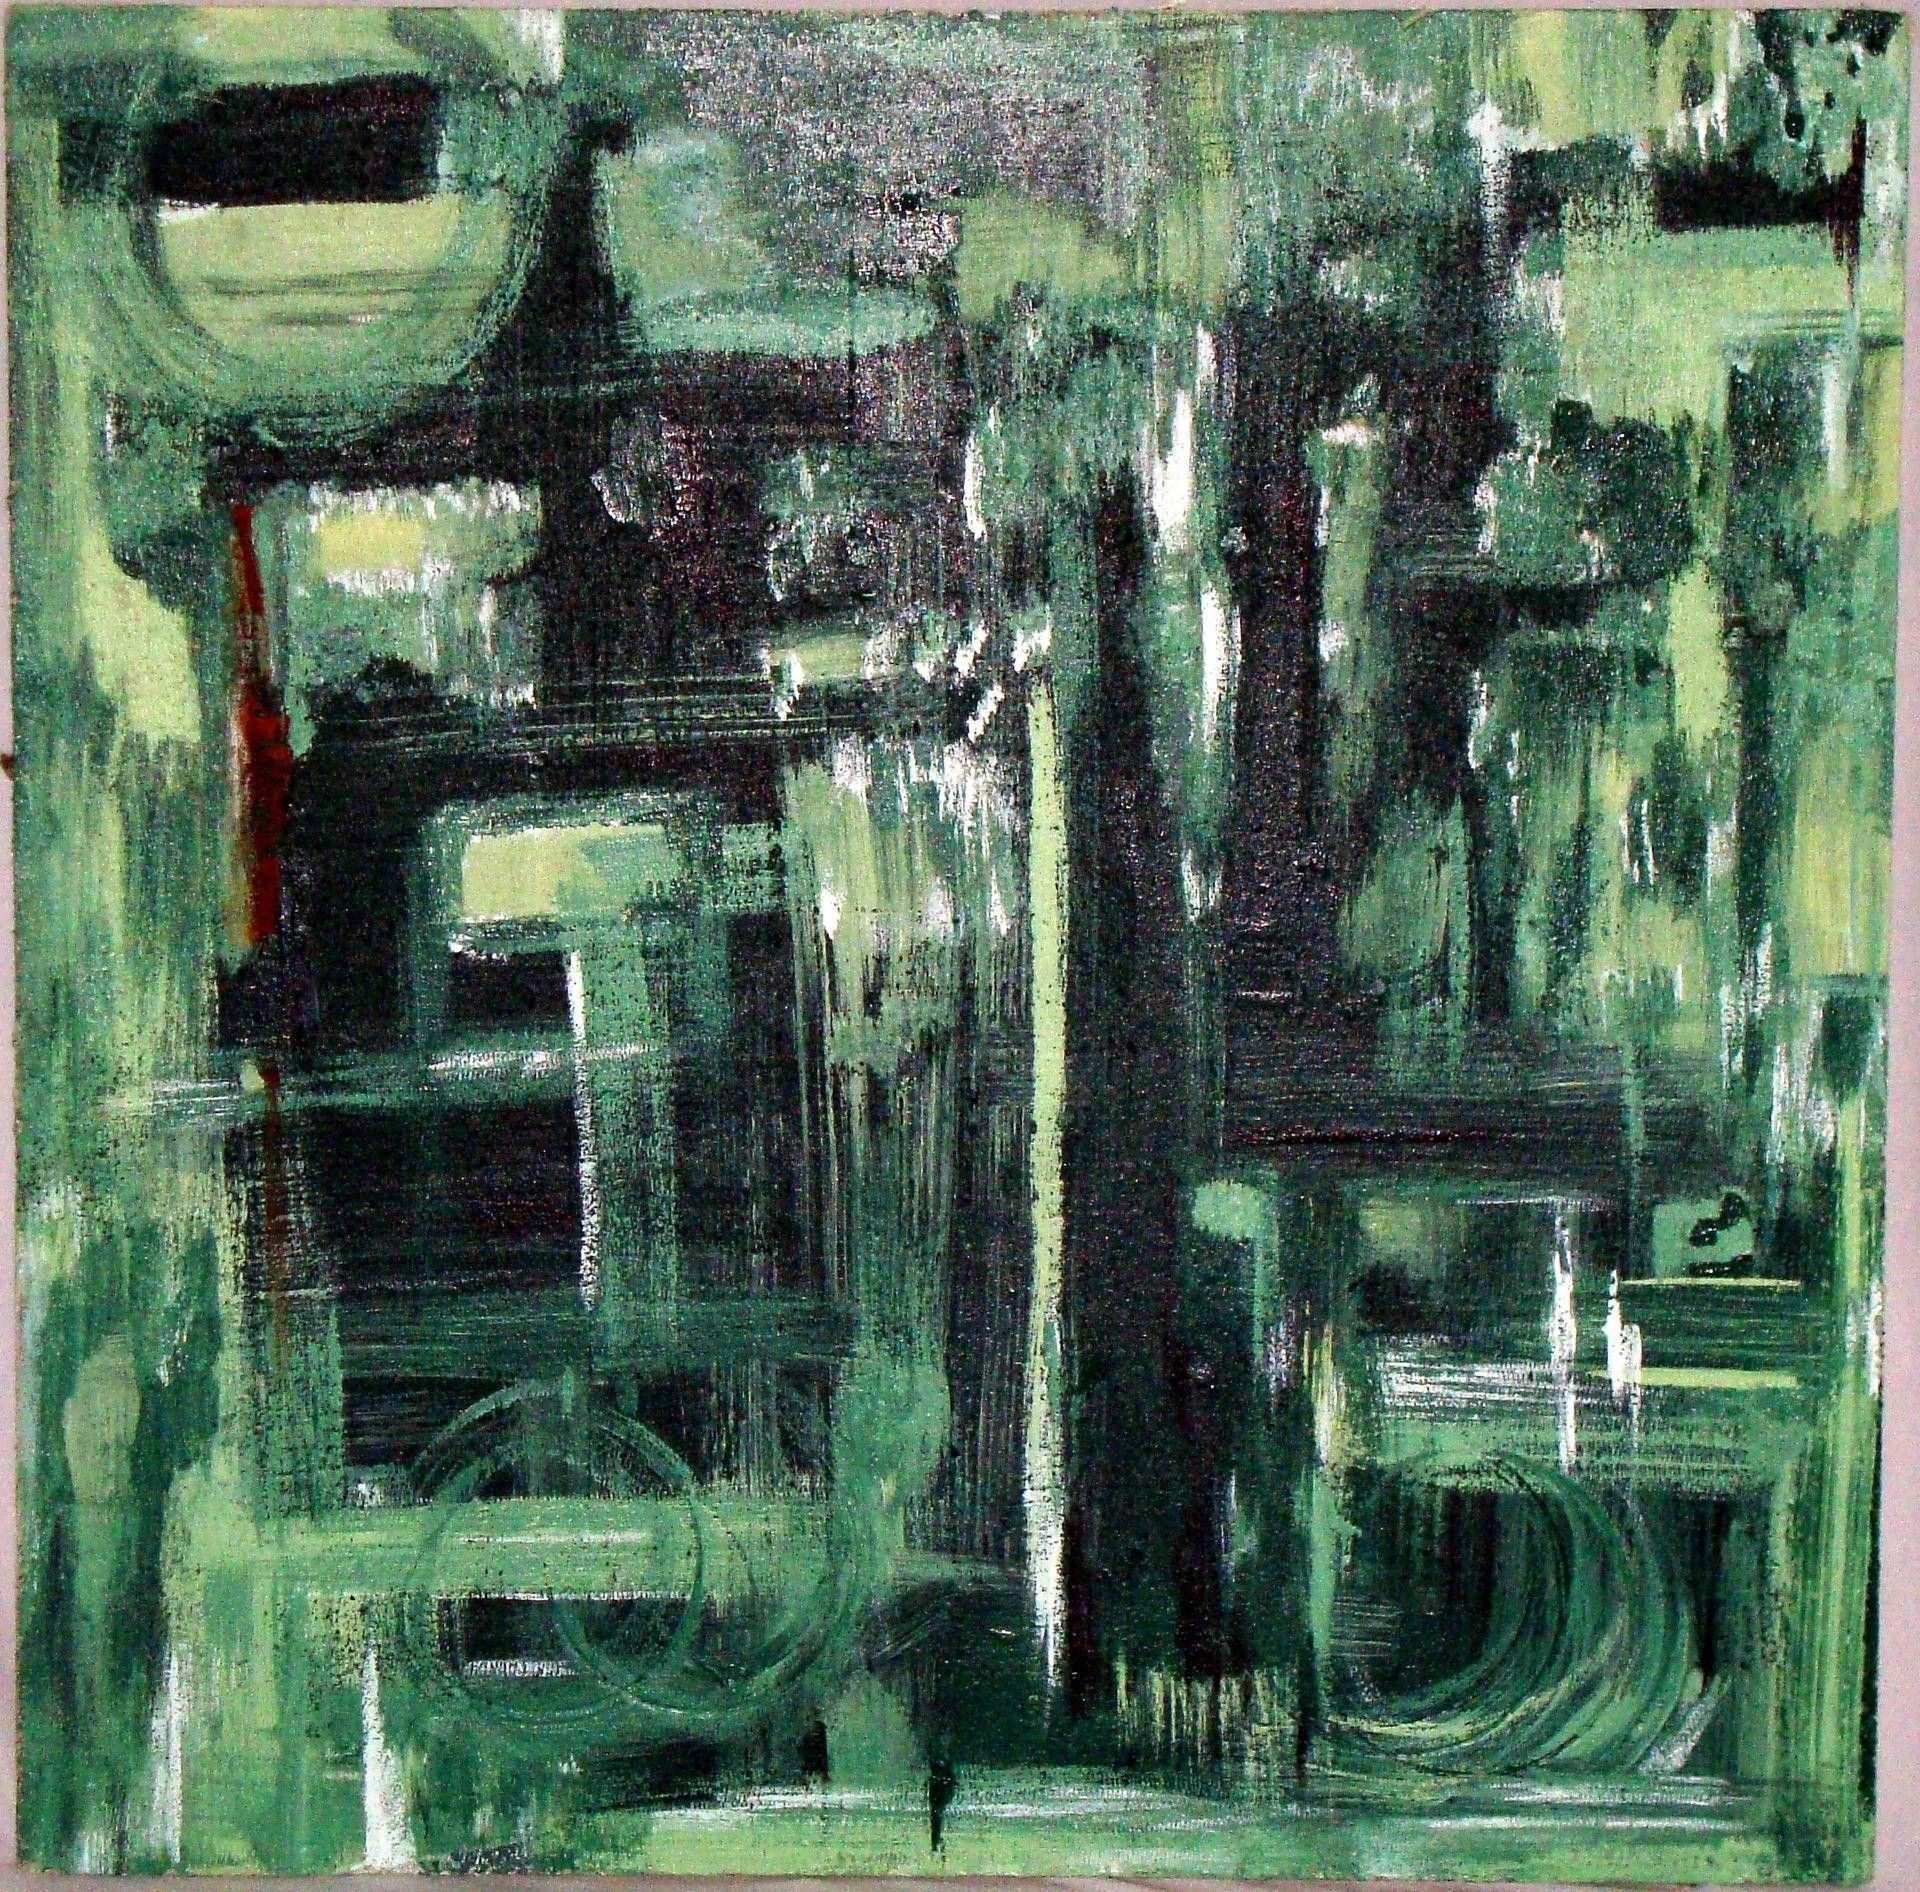 Terra Verde Original Abstract Painting by Alaina